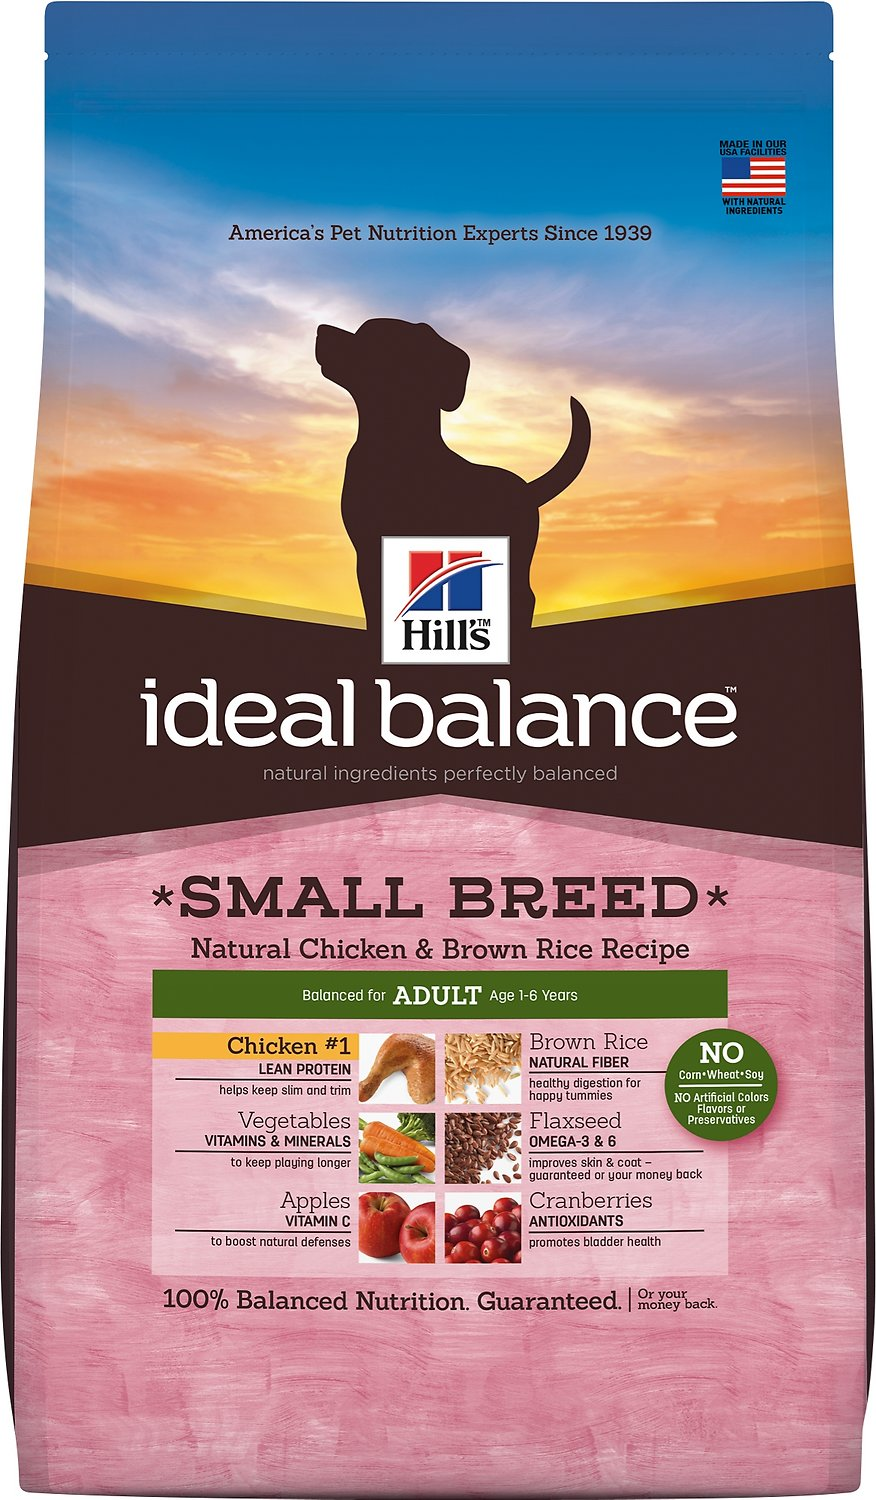 Ideal Balance Dog Food >> Hill S Ideal Balance Small Breed Natural Chicken Brown Rice Recipe Adult Dry Dog Food 4 Lb Bag